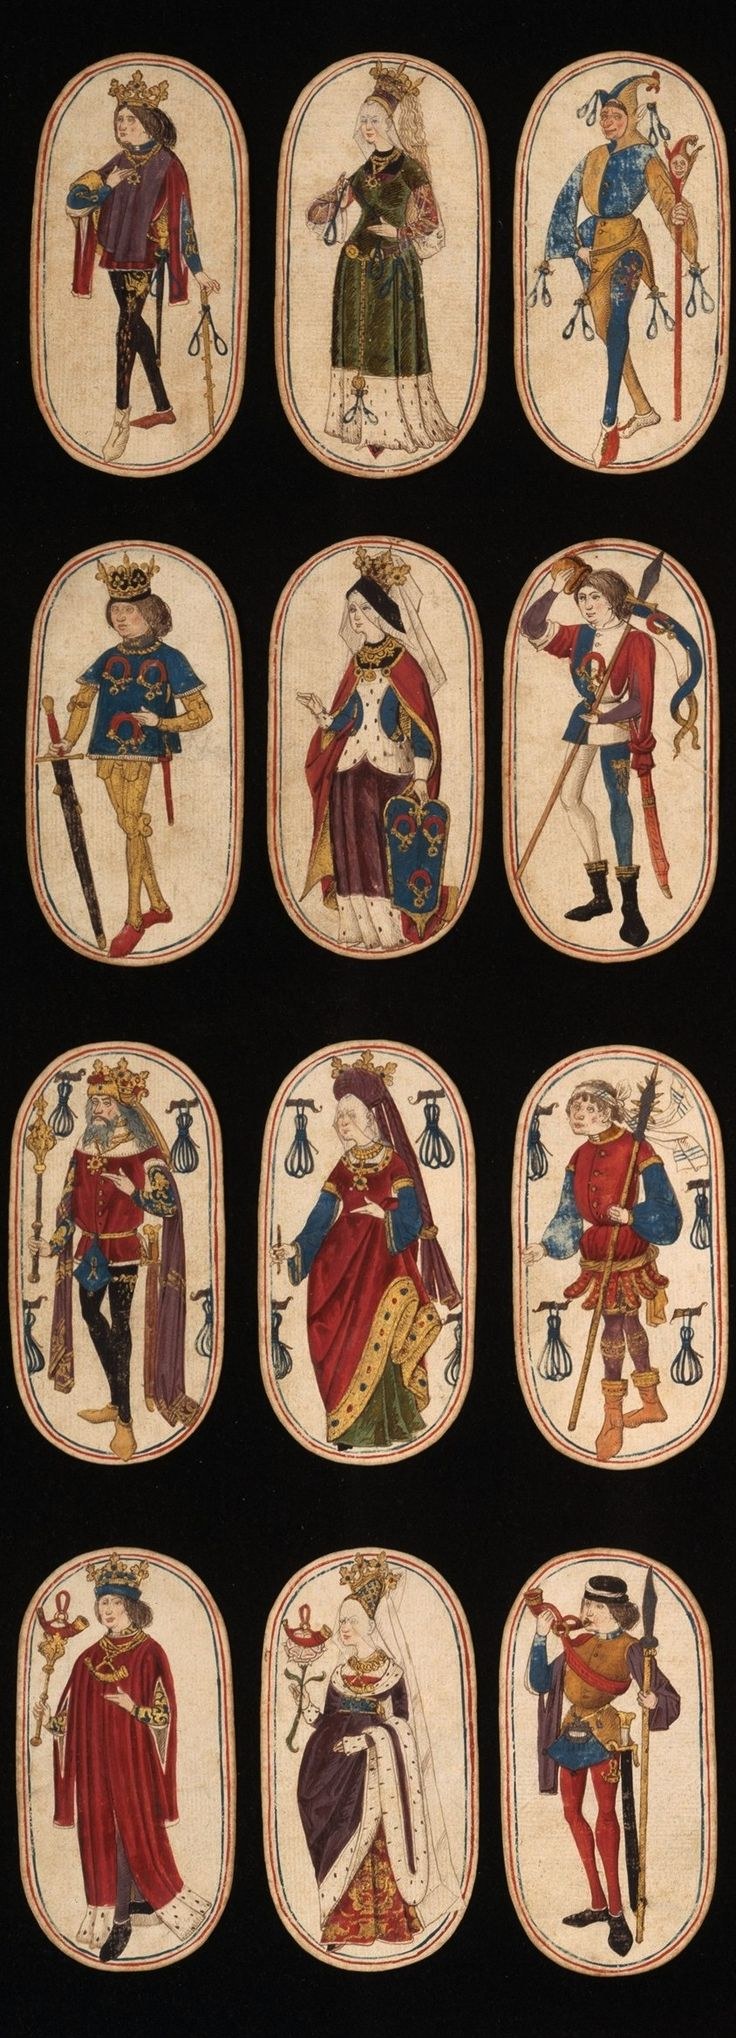 From a set of playing cards, ca. 1470–1485, South Netherlandish -- The Cloisters set of fifty-two cards constitutes the only known complete deck of illuminated ordinary playing cards from the 15th century. There are four suits, each consisting of a king, a queen, a knave, and ten pip cards. The suit symbols, based on equipment associated with the hunt, are hunting horns, dog collars, hound tethers, and game nooses. The figures appear to be based on Franco-Flemish models.